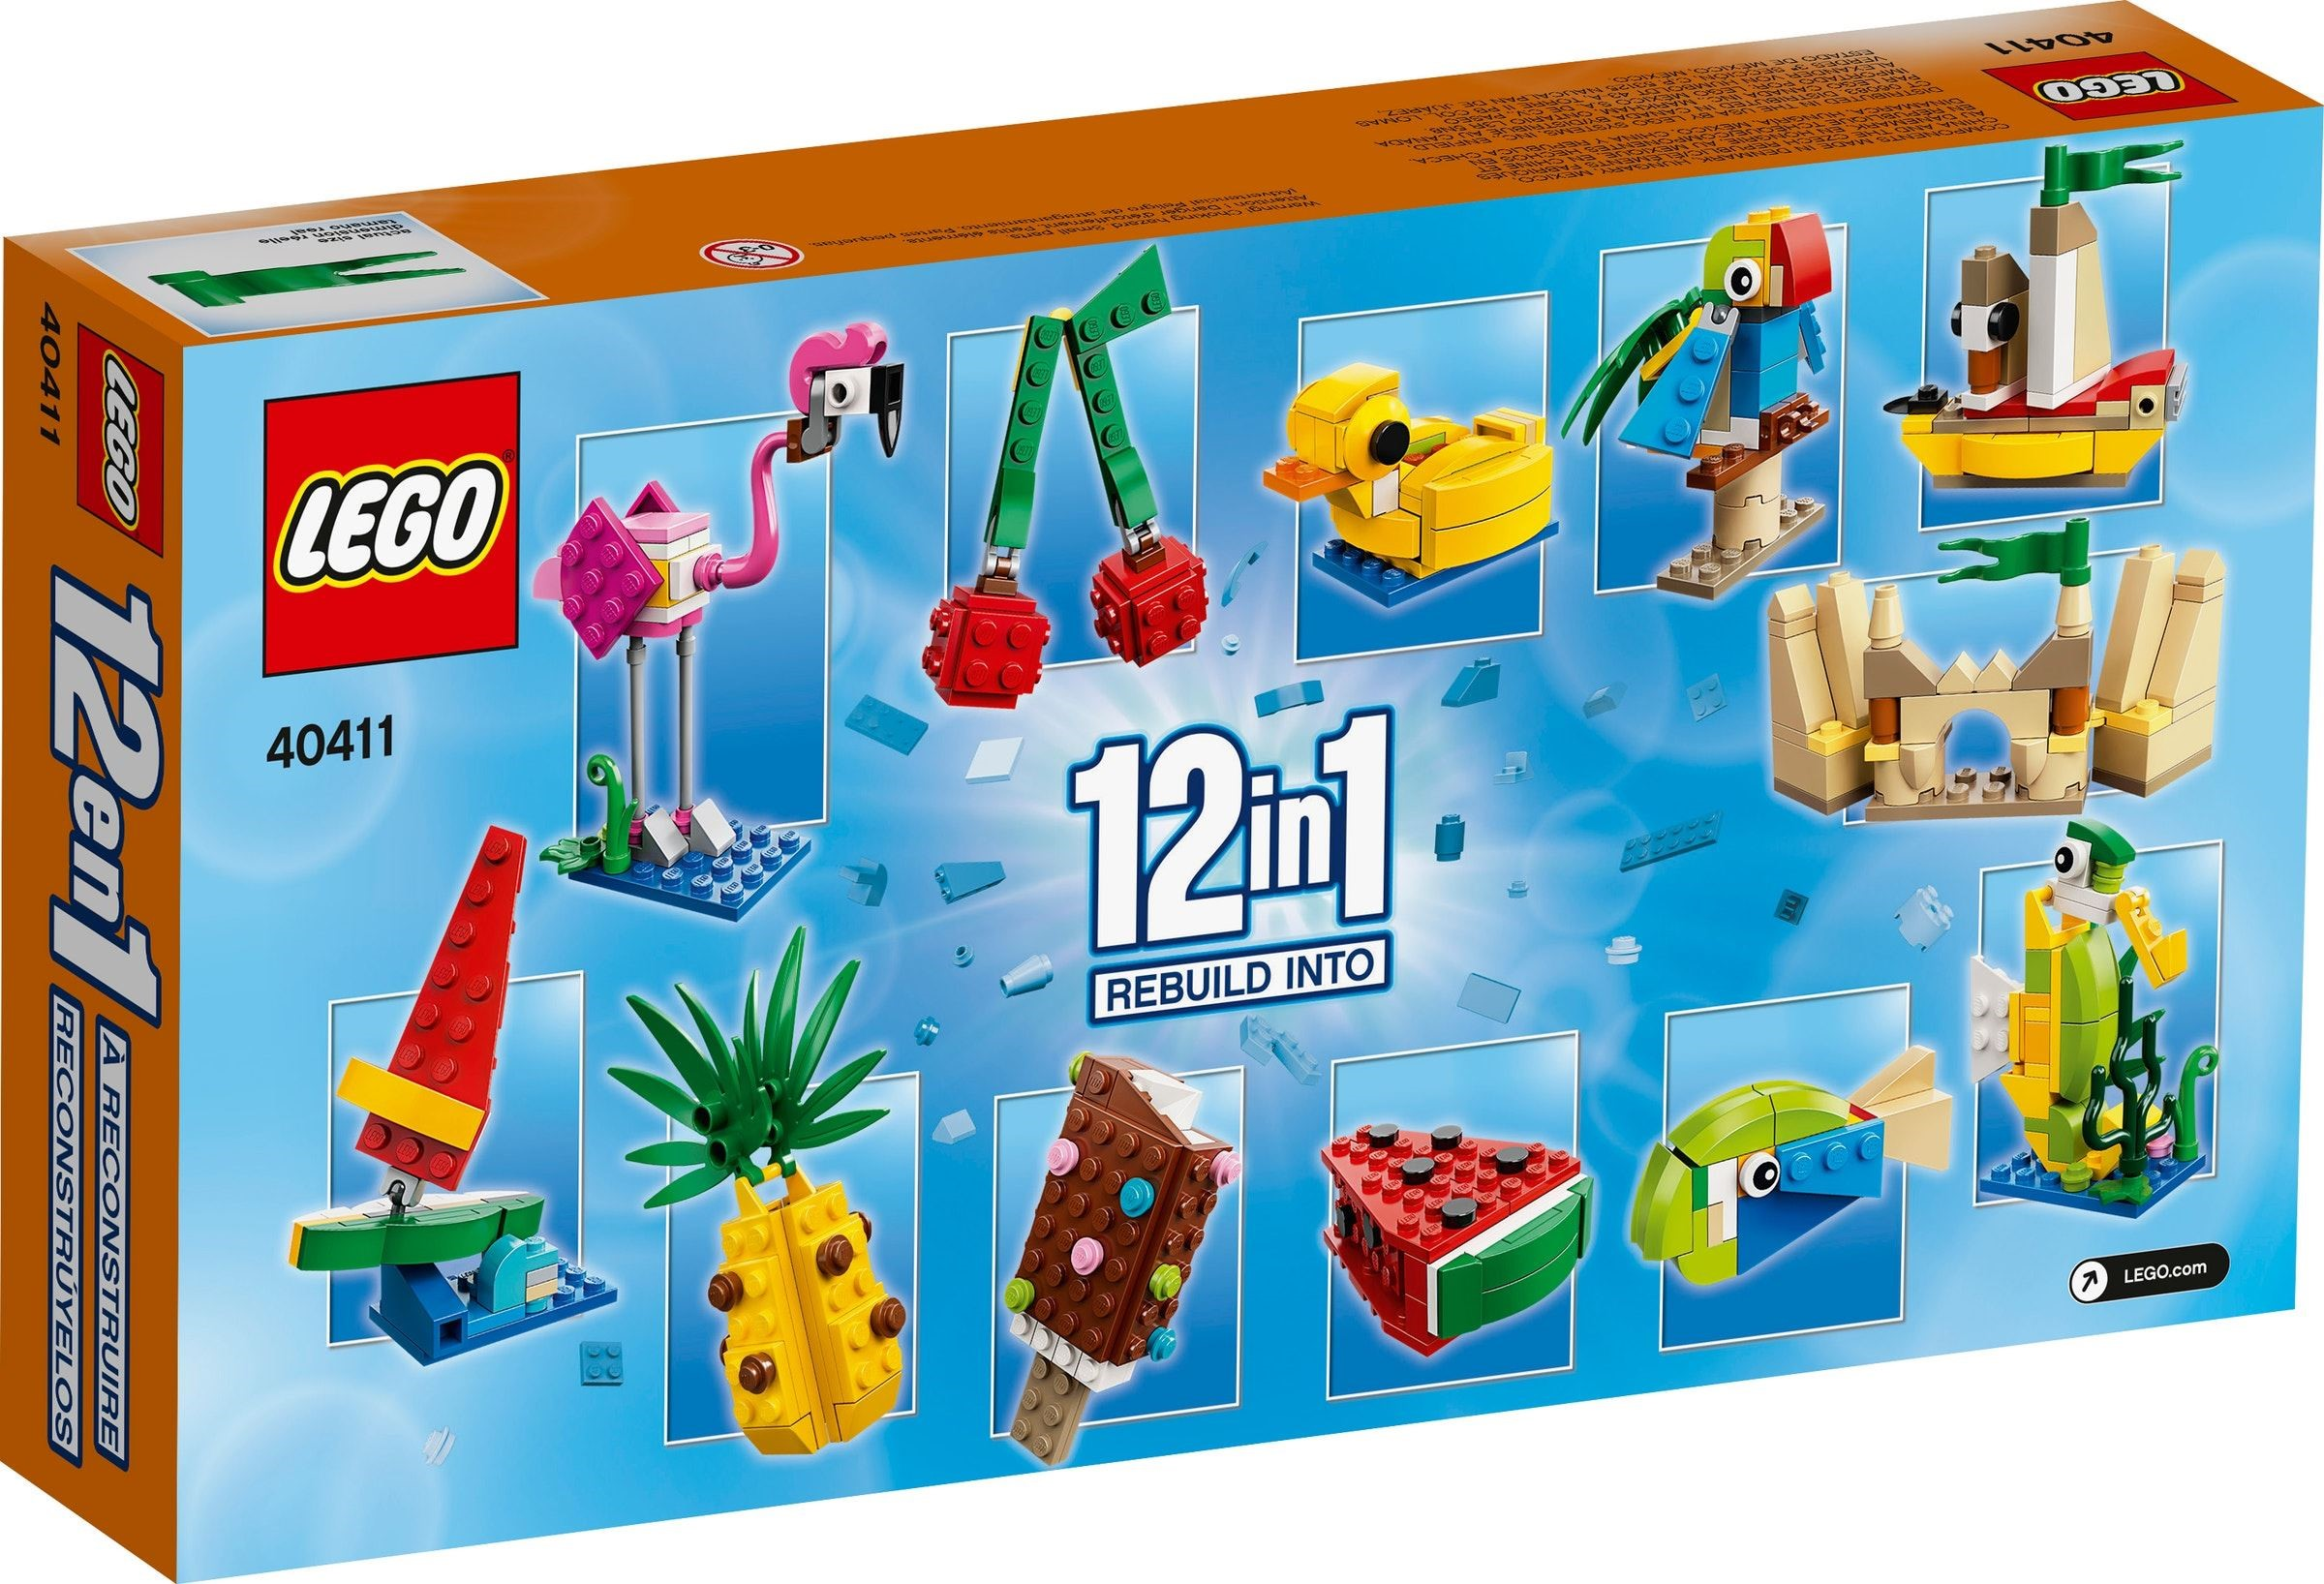 lego-40411-creative-fun-12-in-1-box-back-2020 zusammengebaut.com